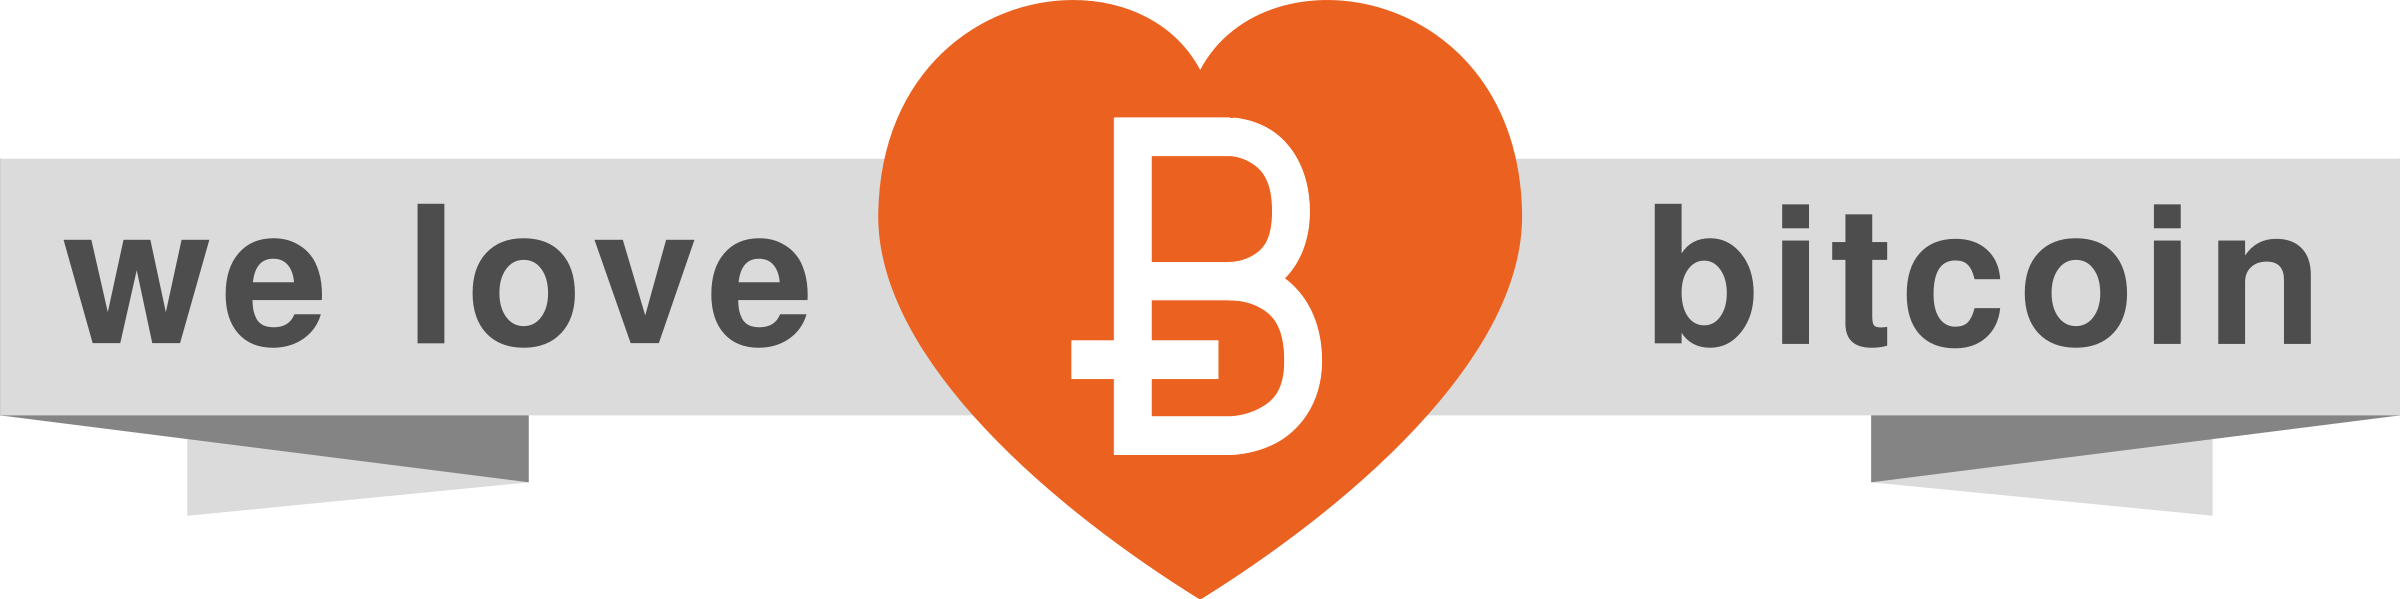 ribbonWeLoveBitcoin by ecogex